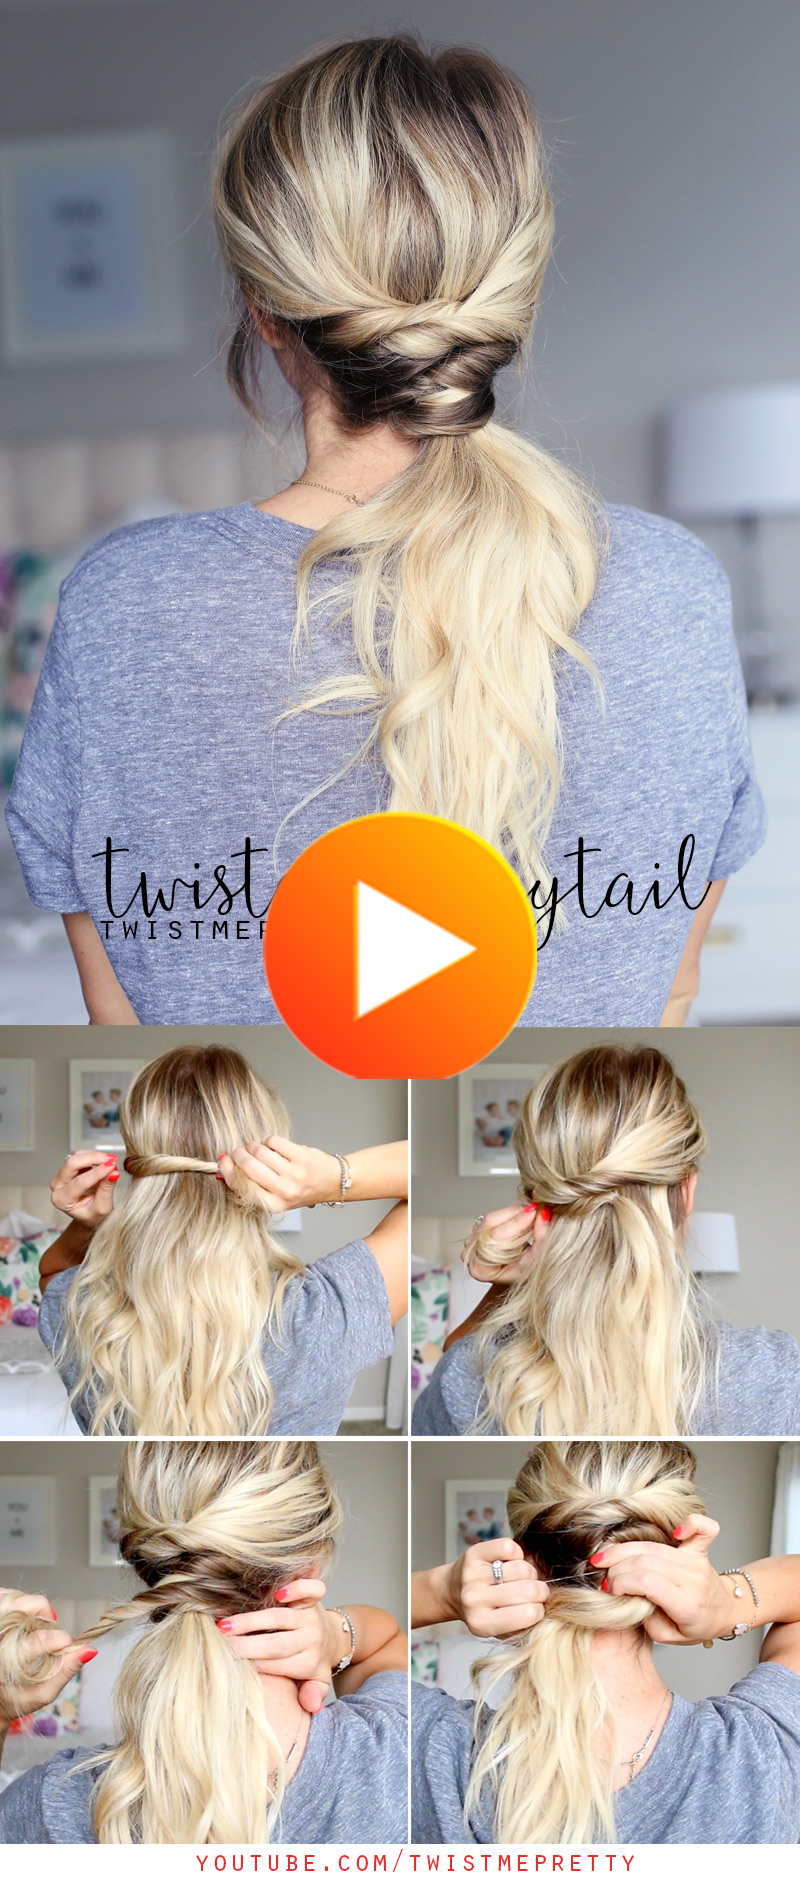 Twisted Ponytail In 2020 Twist Ponytail Pretty Ponytails Low Ponytail Hairstyles